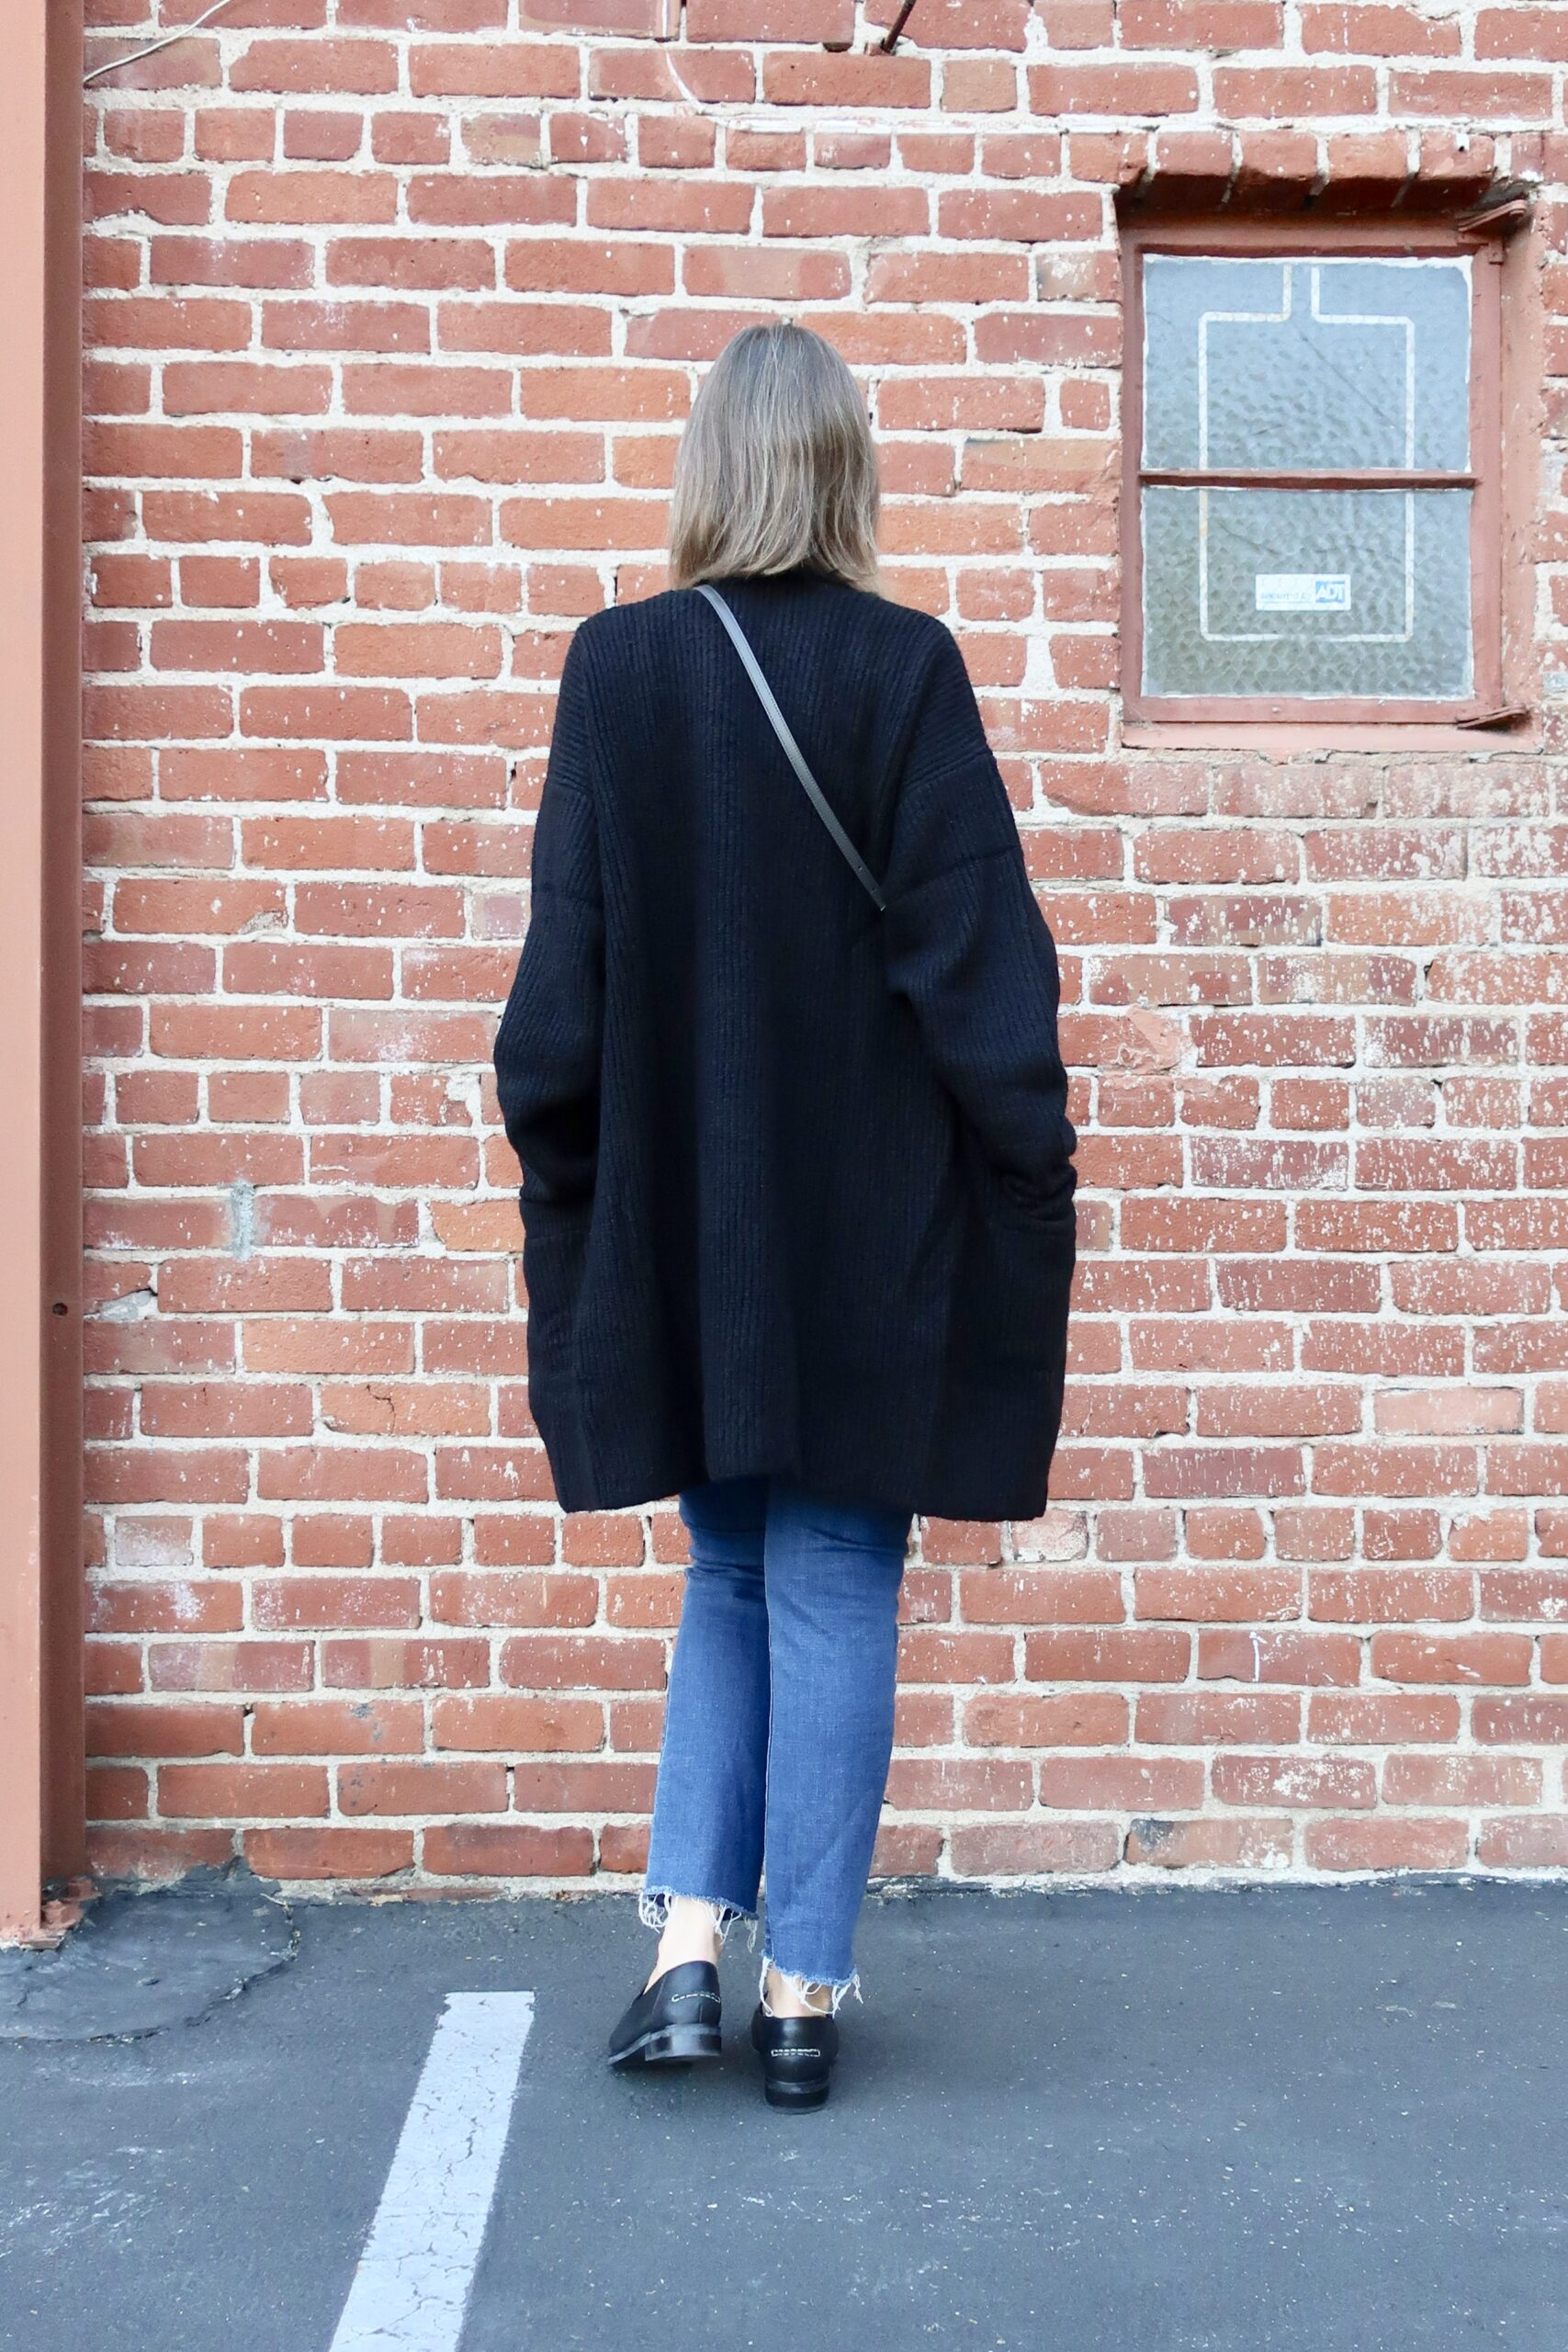 long warm cozy cardigan from the Nordstrom Anniversary Sale